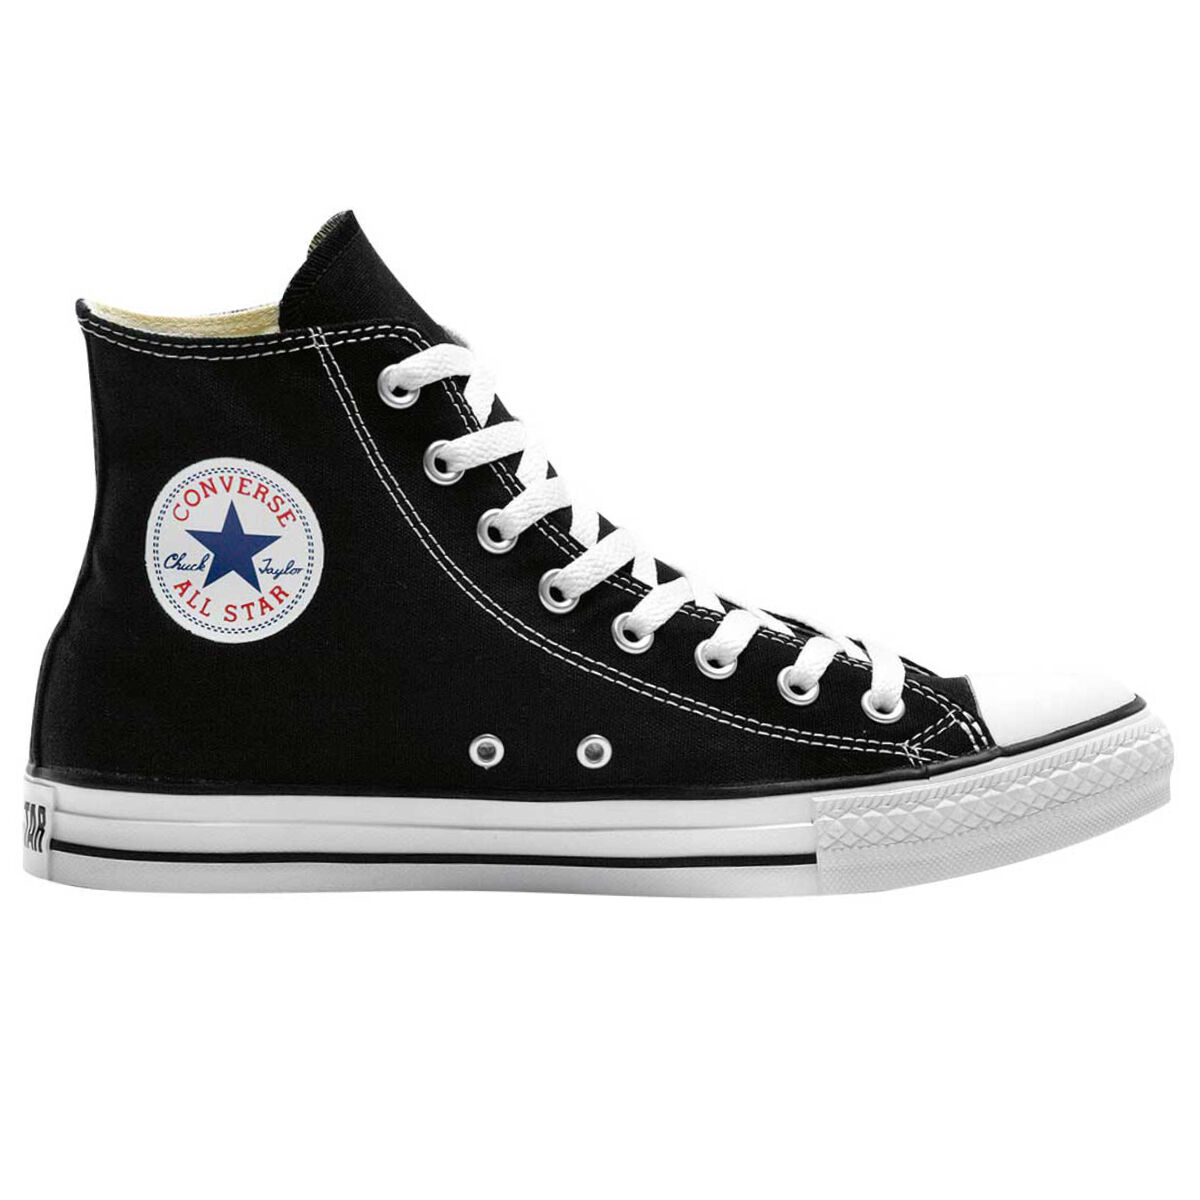 Converse Chuck Taylor All Star Hi Top Casual Shoes Black White US Mens 4 Womens 6